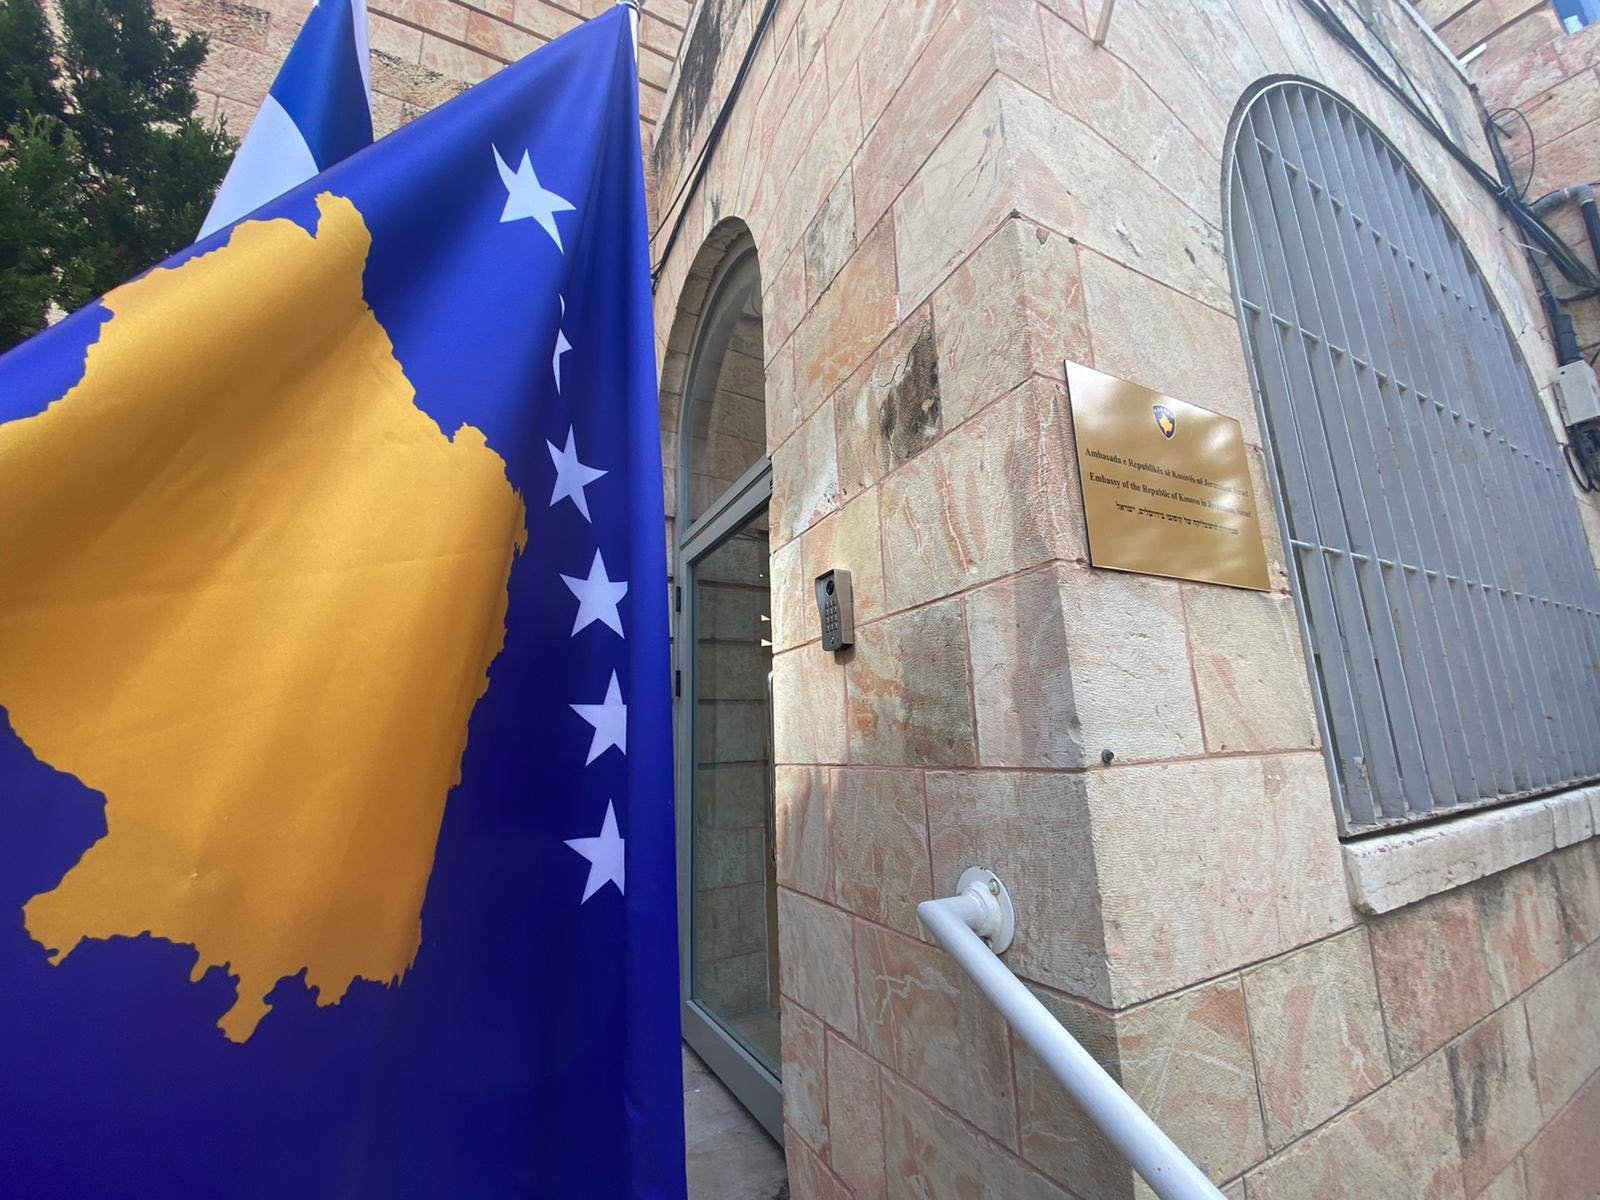 The Kosova and Israel flags wave next to the entrance of the Kosovo embassy in Jerusalem, March 14, 2021. (AA Photo)